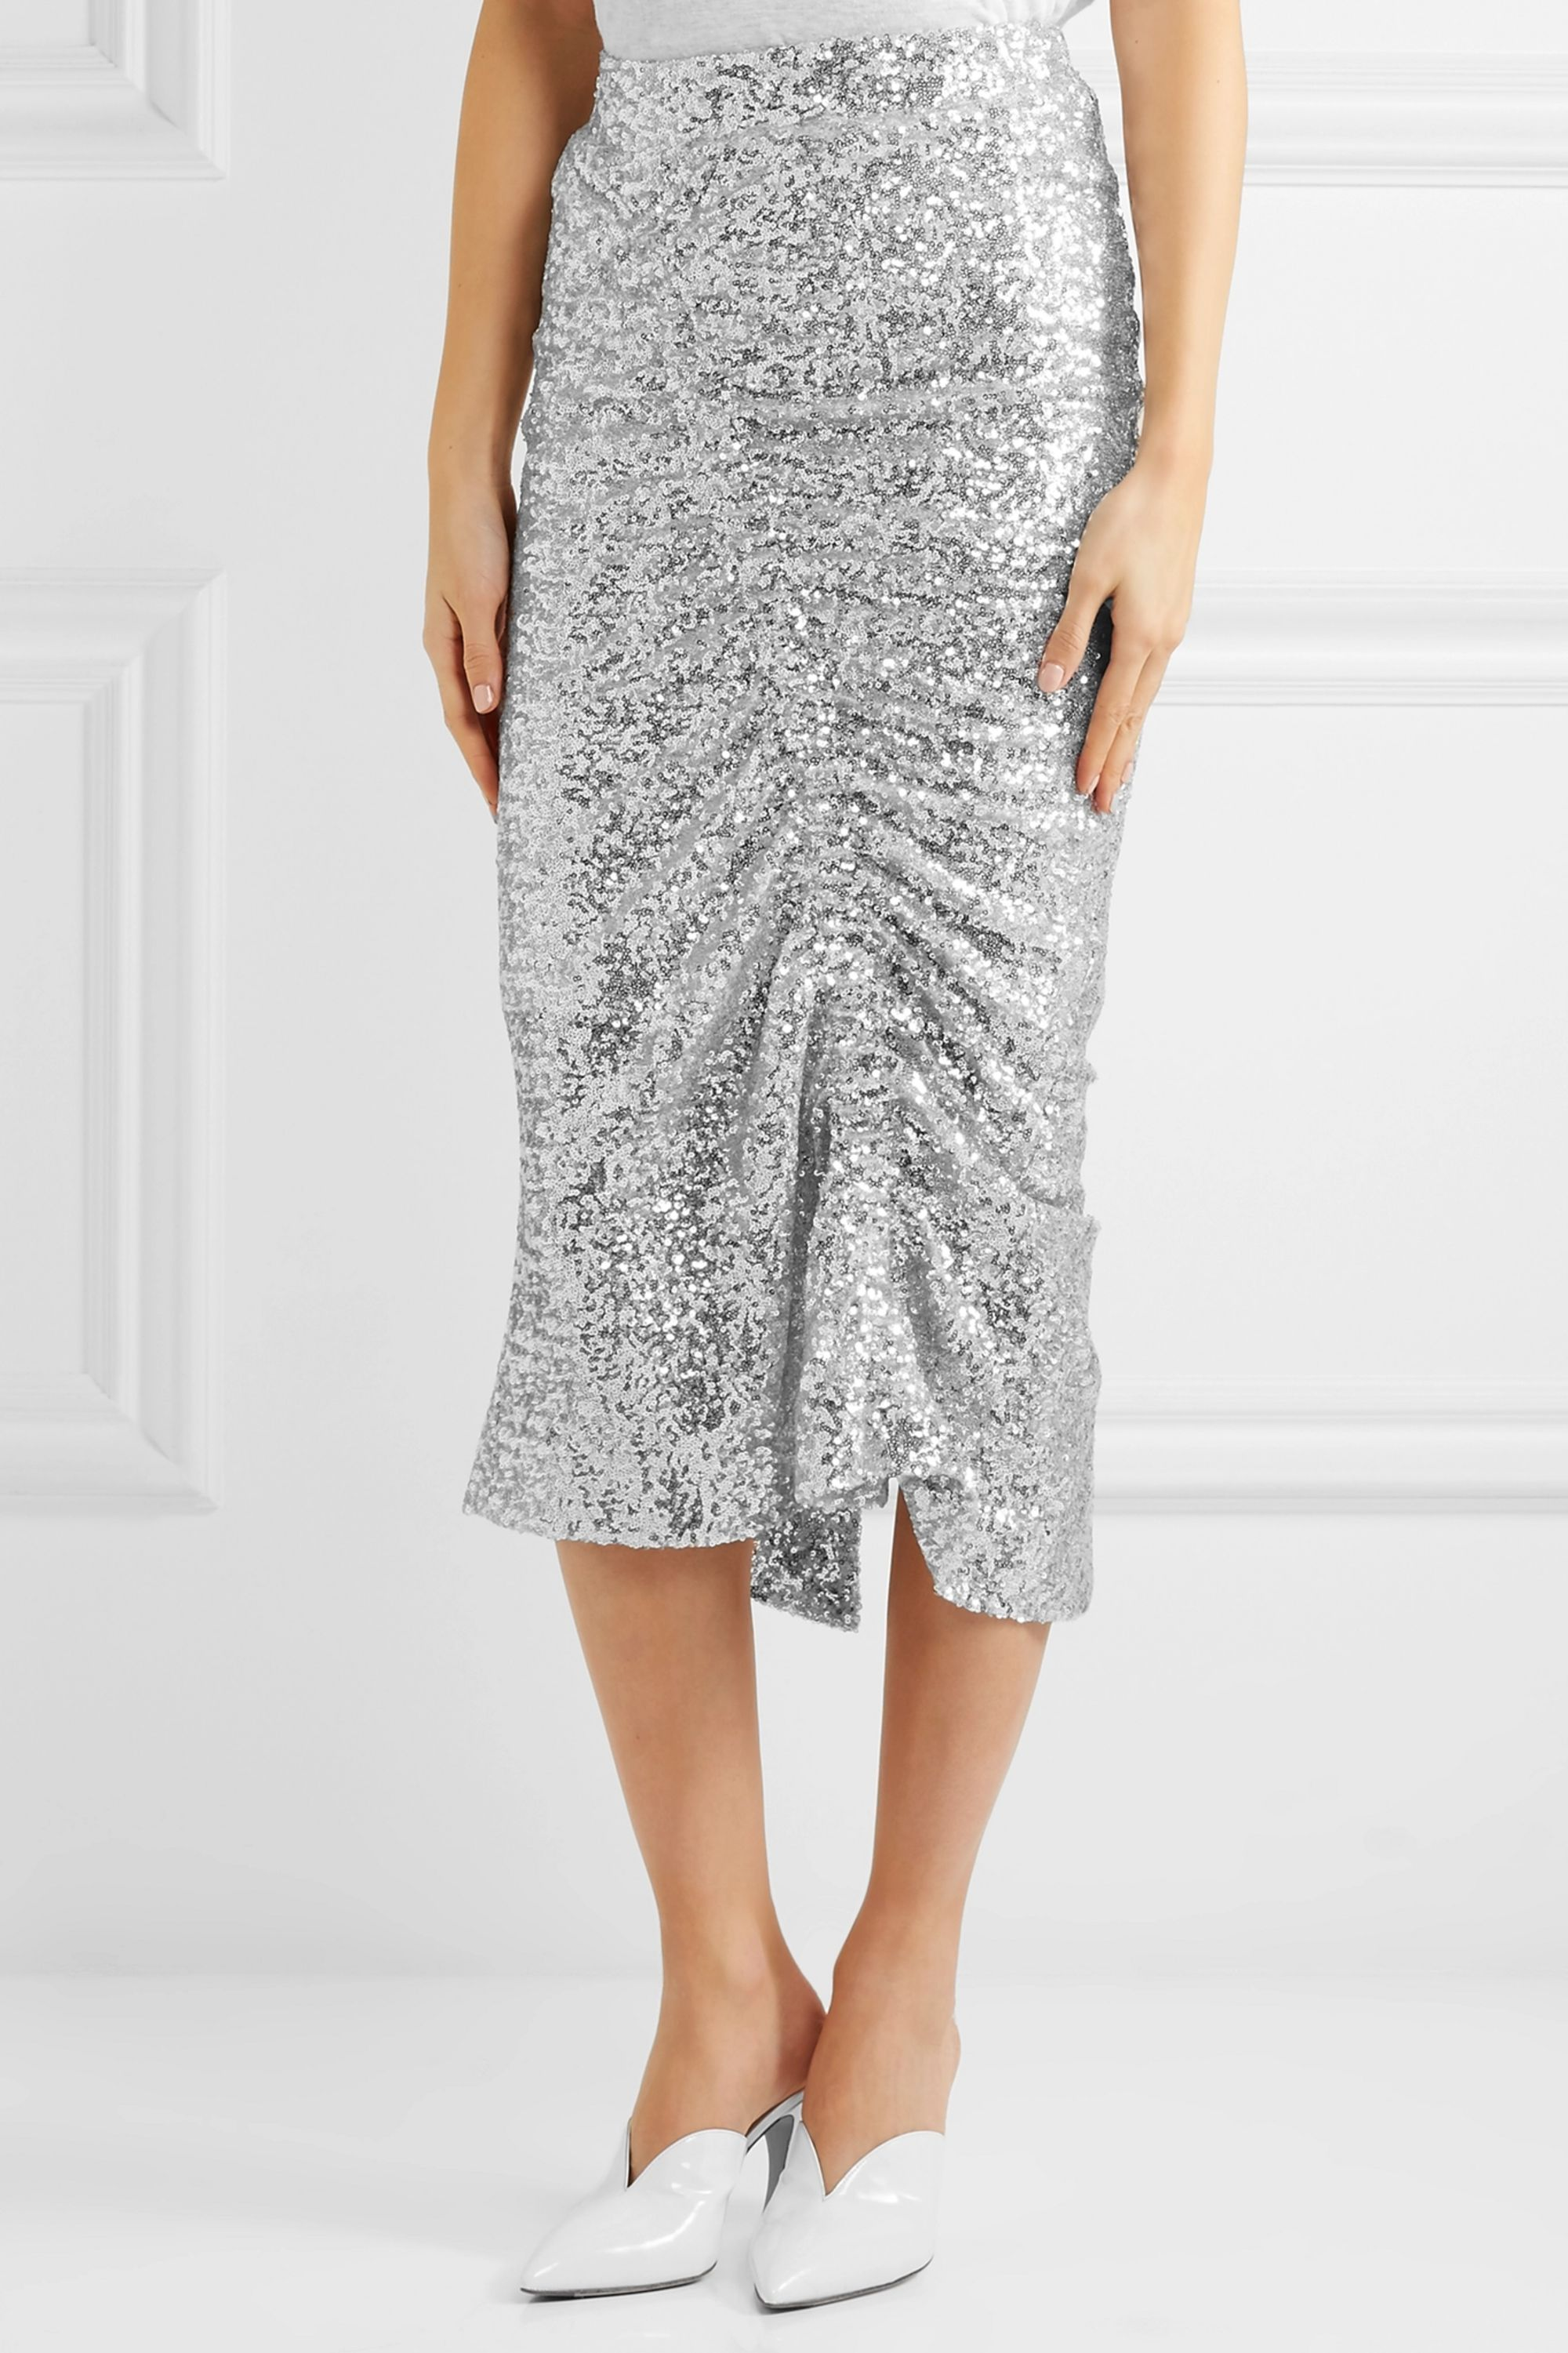 Preen by Thornton Bregazzi Gemma ruched sequined stretch-jersey midi skirt